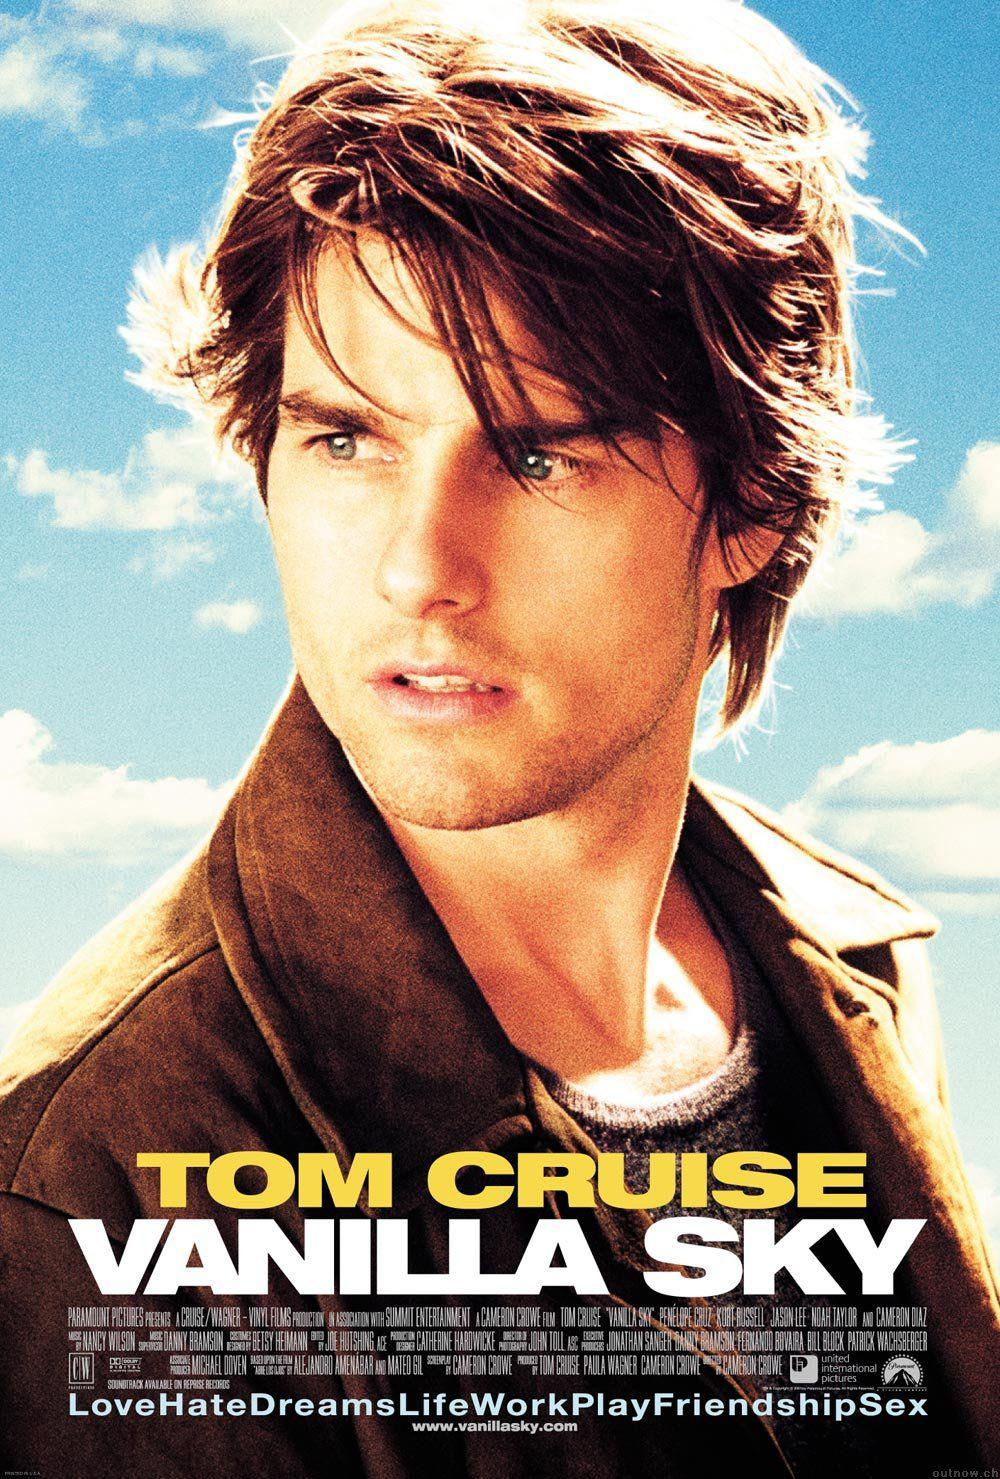 Vanilla Sky - Tom Cruise